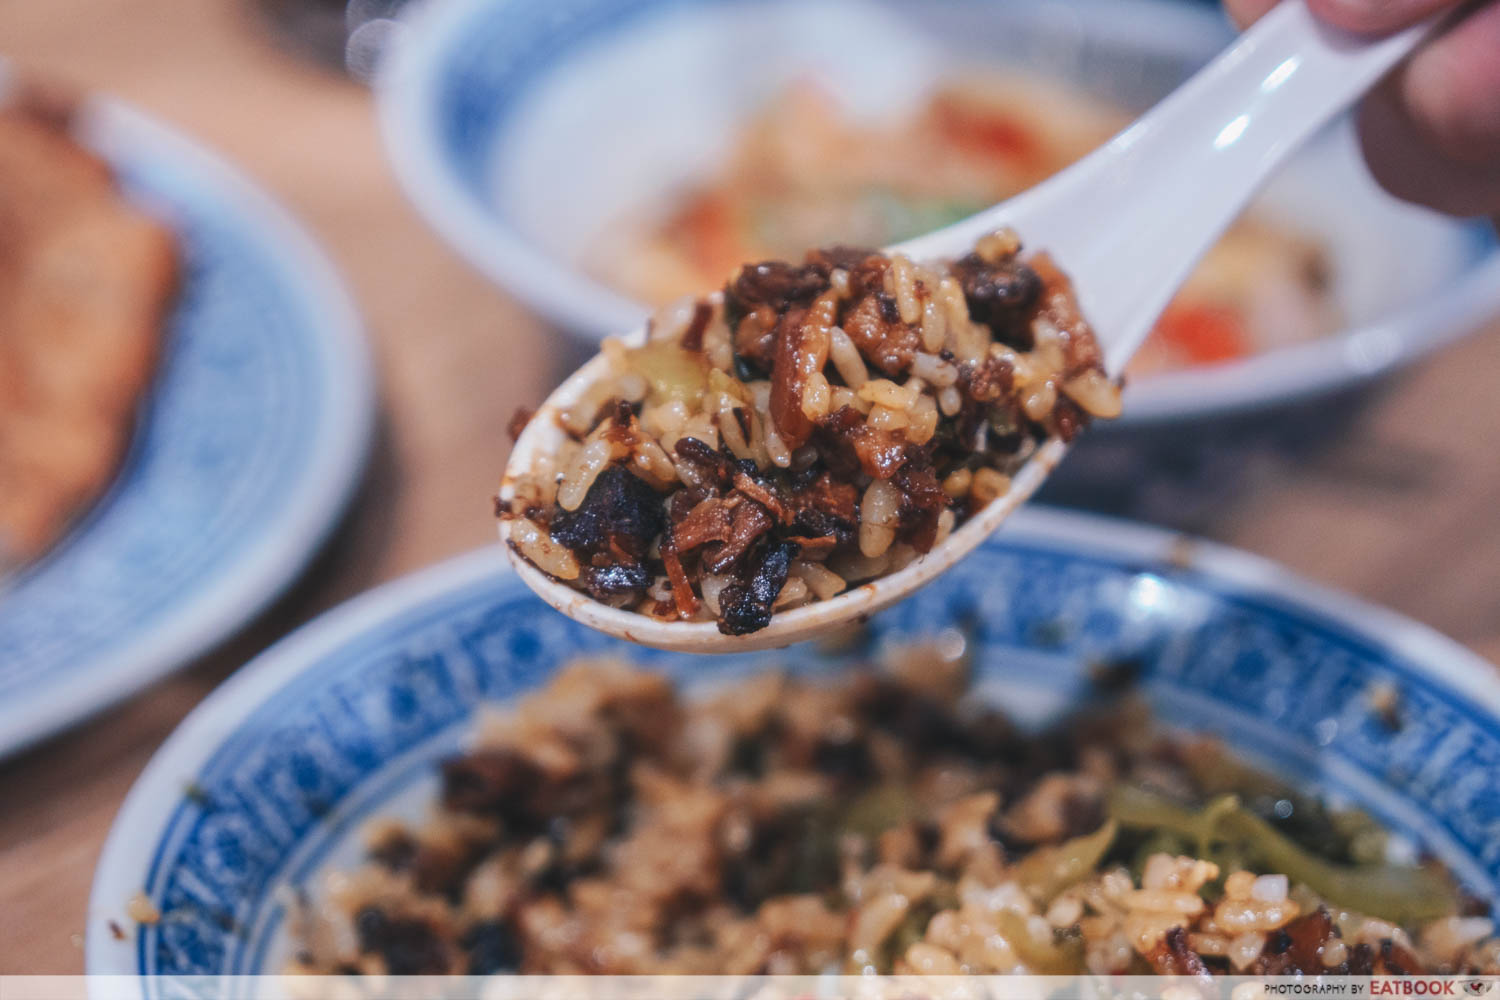 Feng Food hakka style braised meat rice scoop